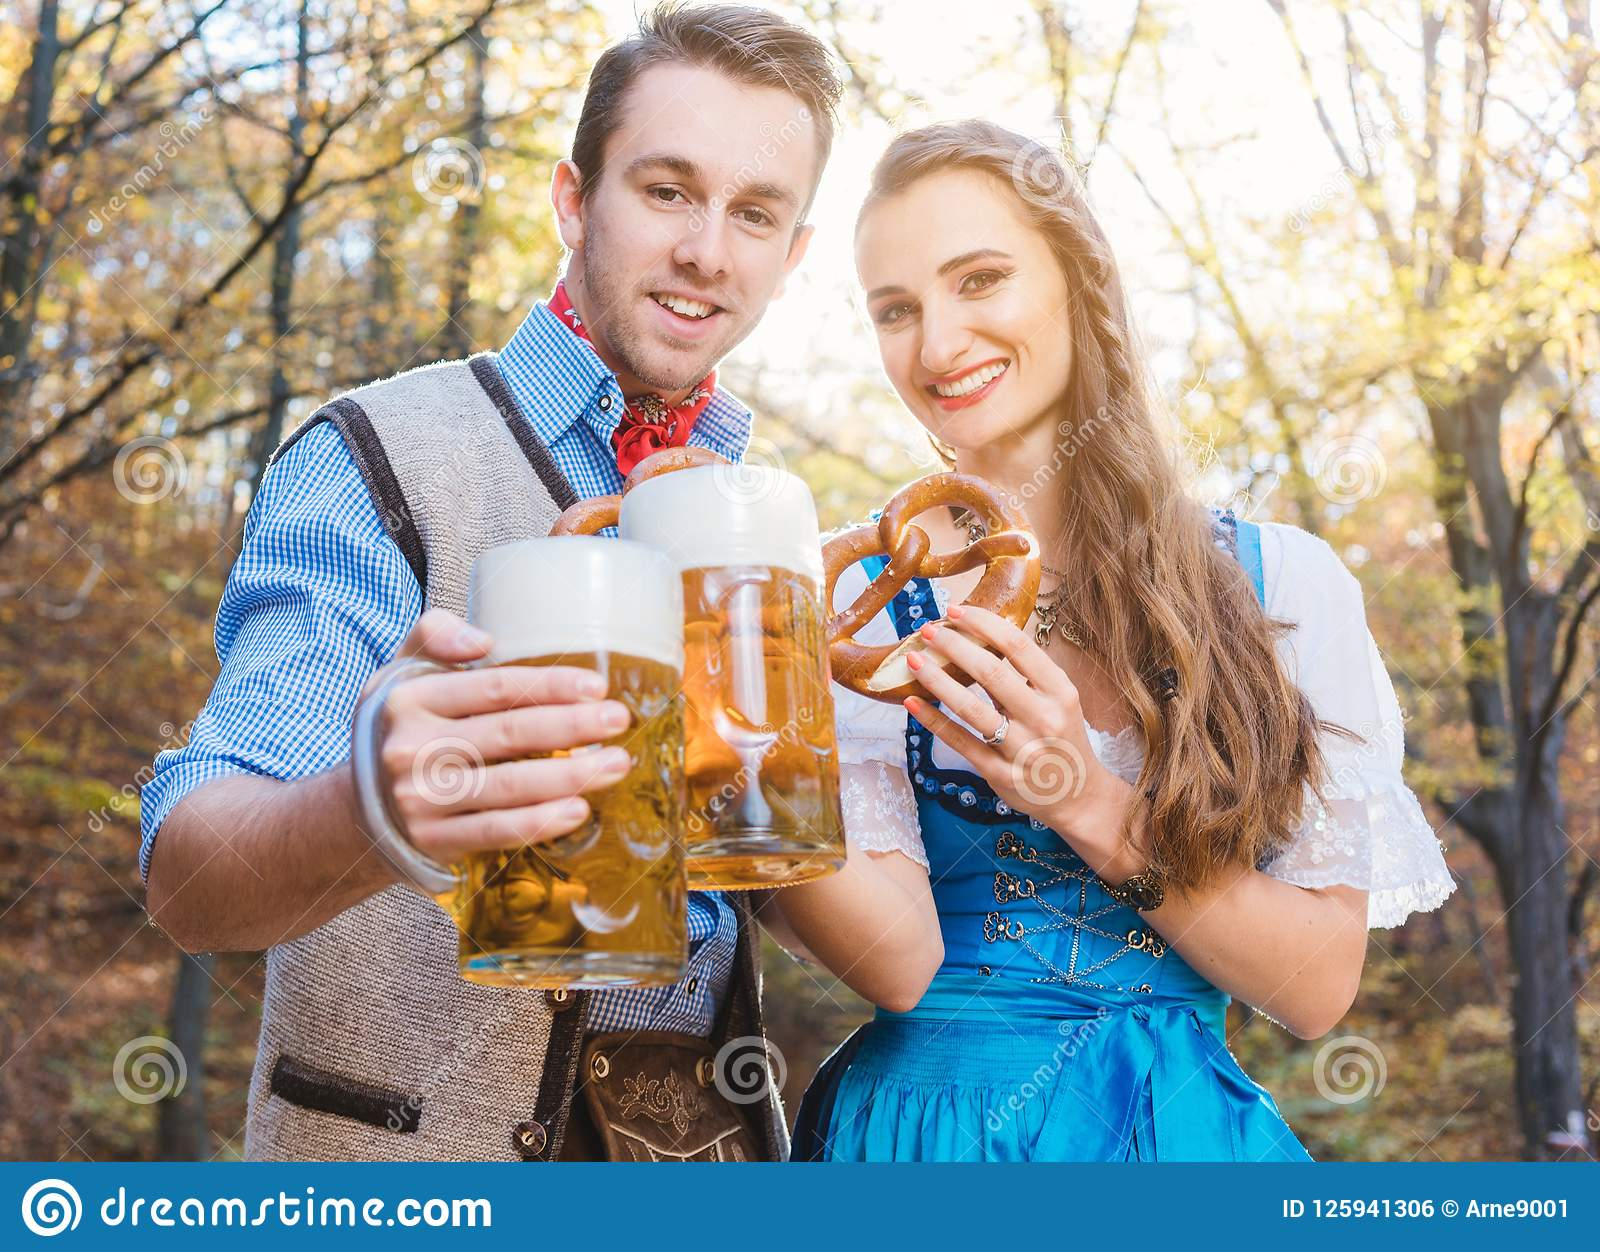 Woman and man in Bavarian Tracht drinking beer